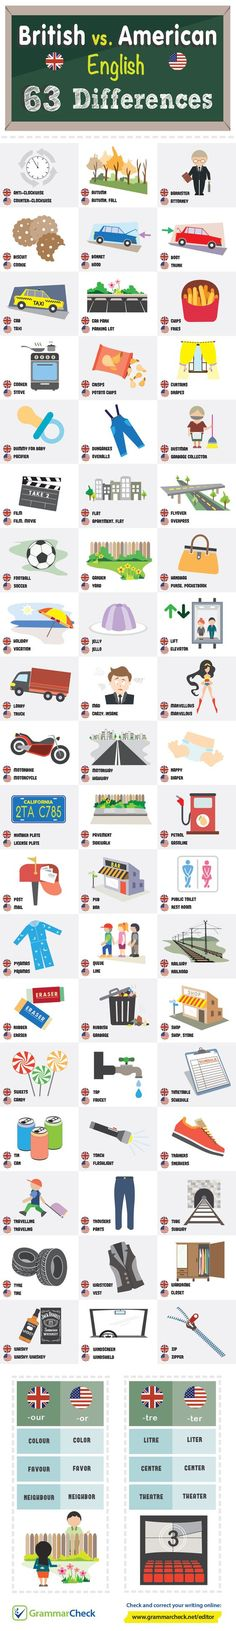 British vs. American English: 63 Differences  Anna comments: as an American working in a British school I very much appreciate this graphic!! I think that even if the emphasis is on British or American English that the children should be aware of some simple differences in vocabulary between different English dialects